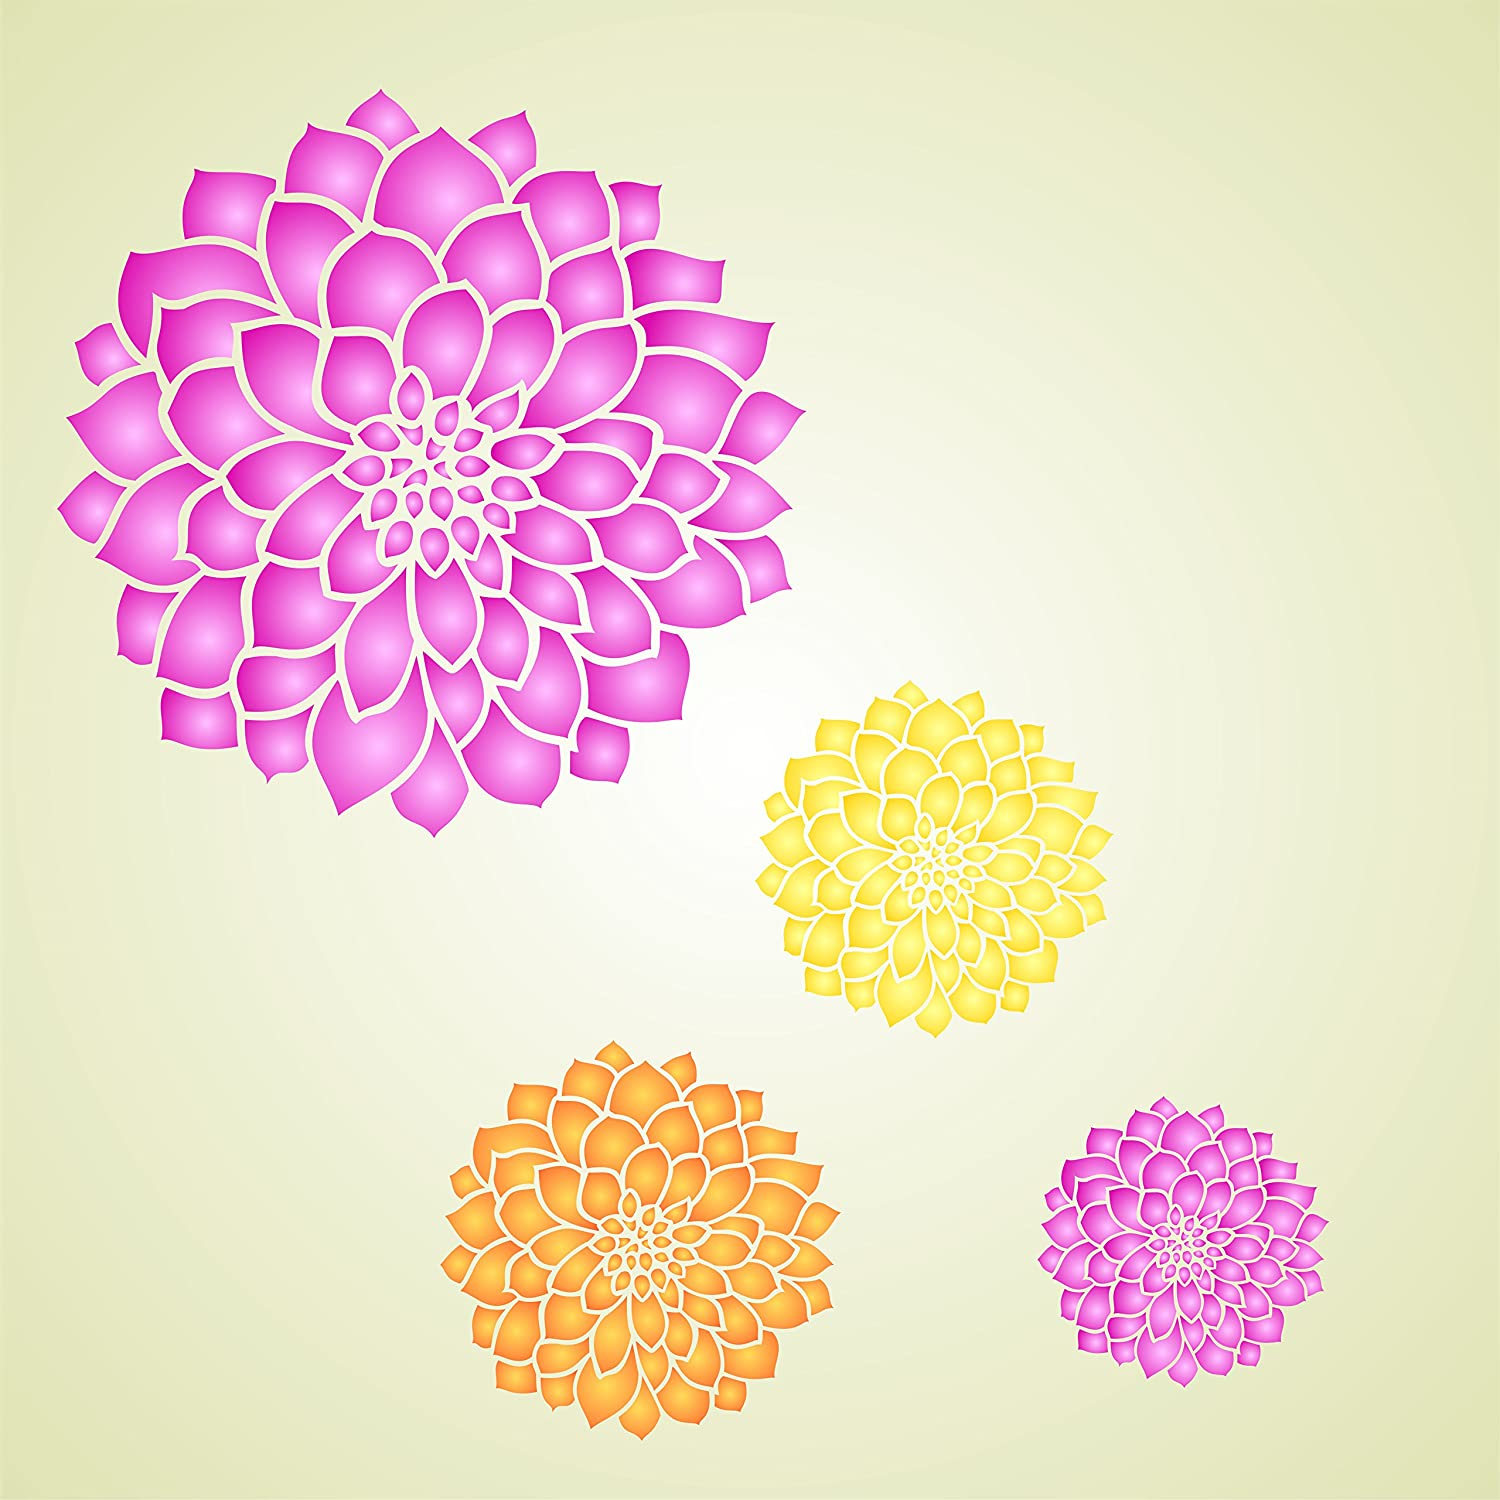 Amazon dahlia or zinnia stencil size 325w x 325h amazon dahlia or zinnia stencil size 325w x 325h reusable wall stencils for painting best quality zinnia grande flower ideas use on walls amipublicfo Images